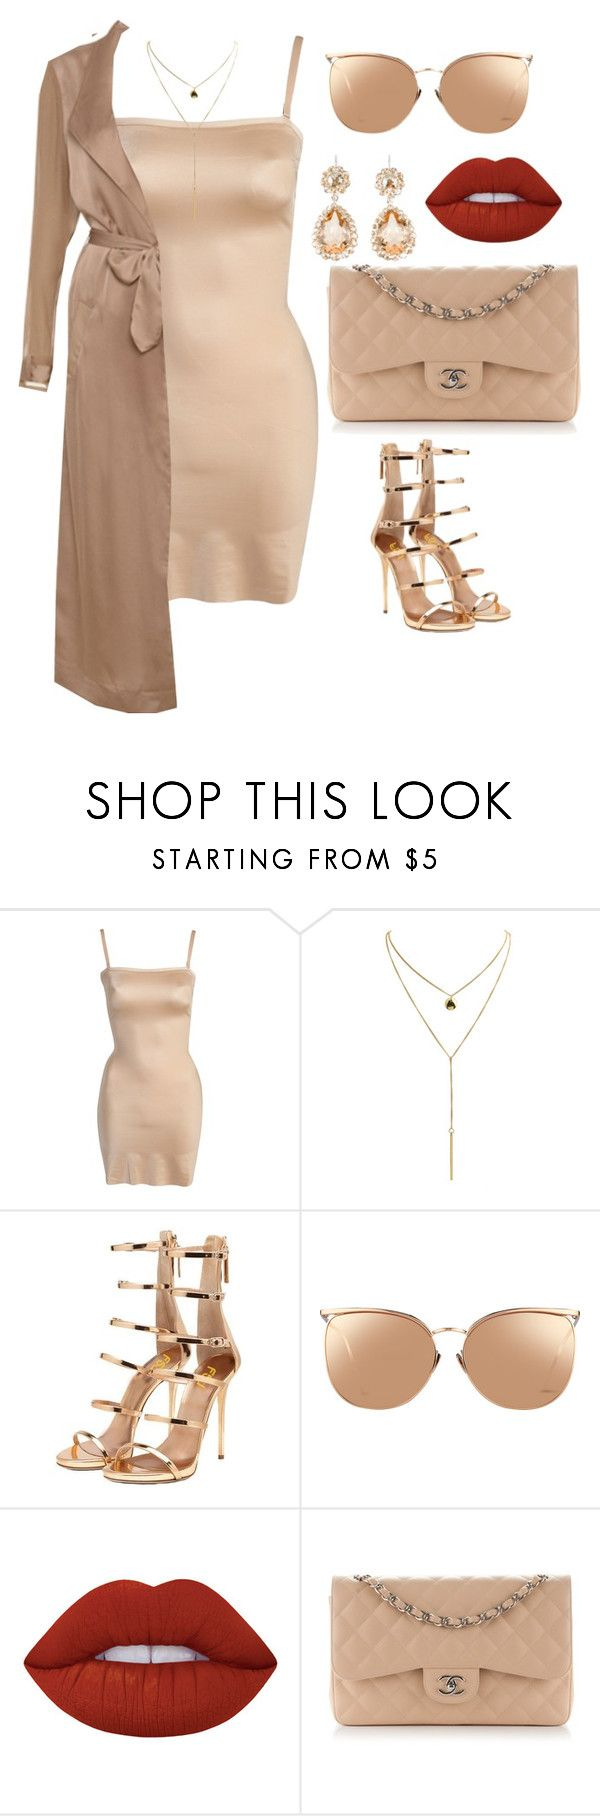 """Untitled #694"" by amoney-1 ❤ liked on Polyvore featuring SPANX, Linda Farrow, Lime Crime, Chanel and Miu Miu"